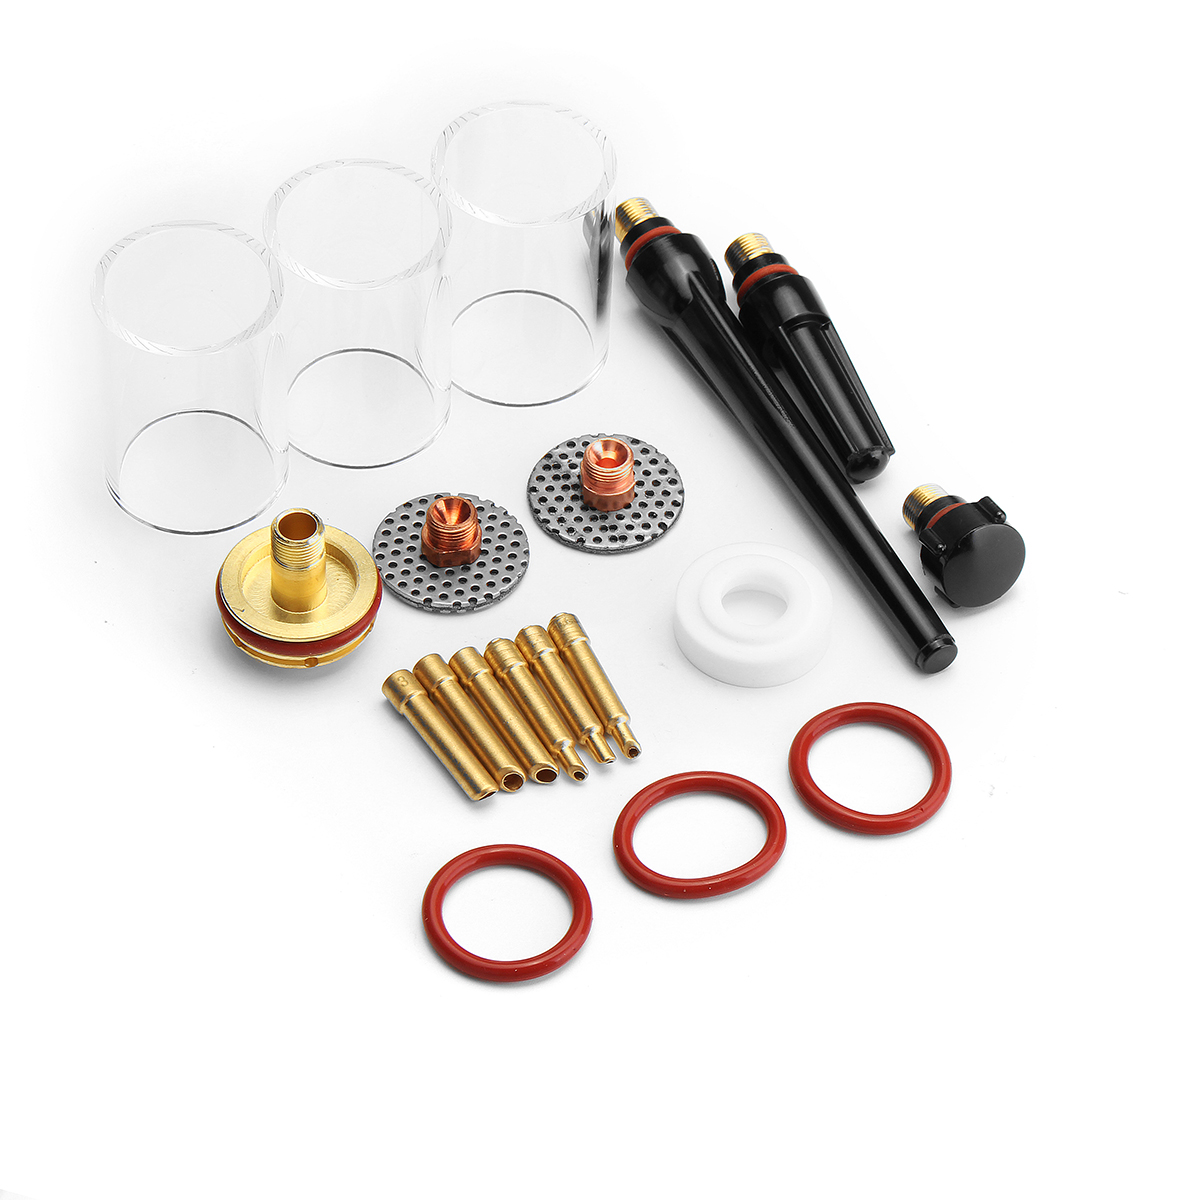 New 19Pcs TIG Welding Torch Kit Gas Lens Pyrex Glass Cup for WP-17/18/26 Series Welding Accessories tig 26 wp 26 wp26 wp 26 tig 26 tig welding torch dinse connection quick connector gas electric seperated 4m